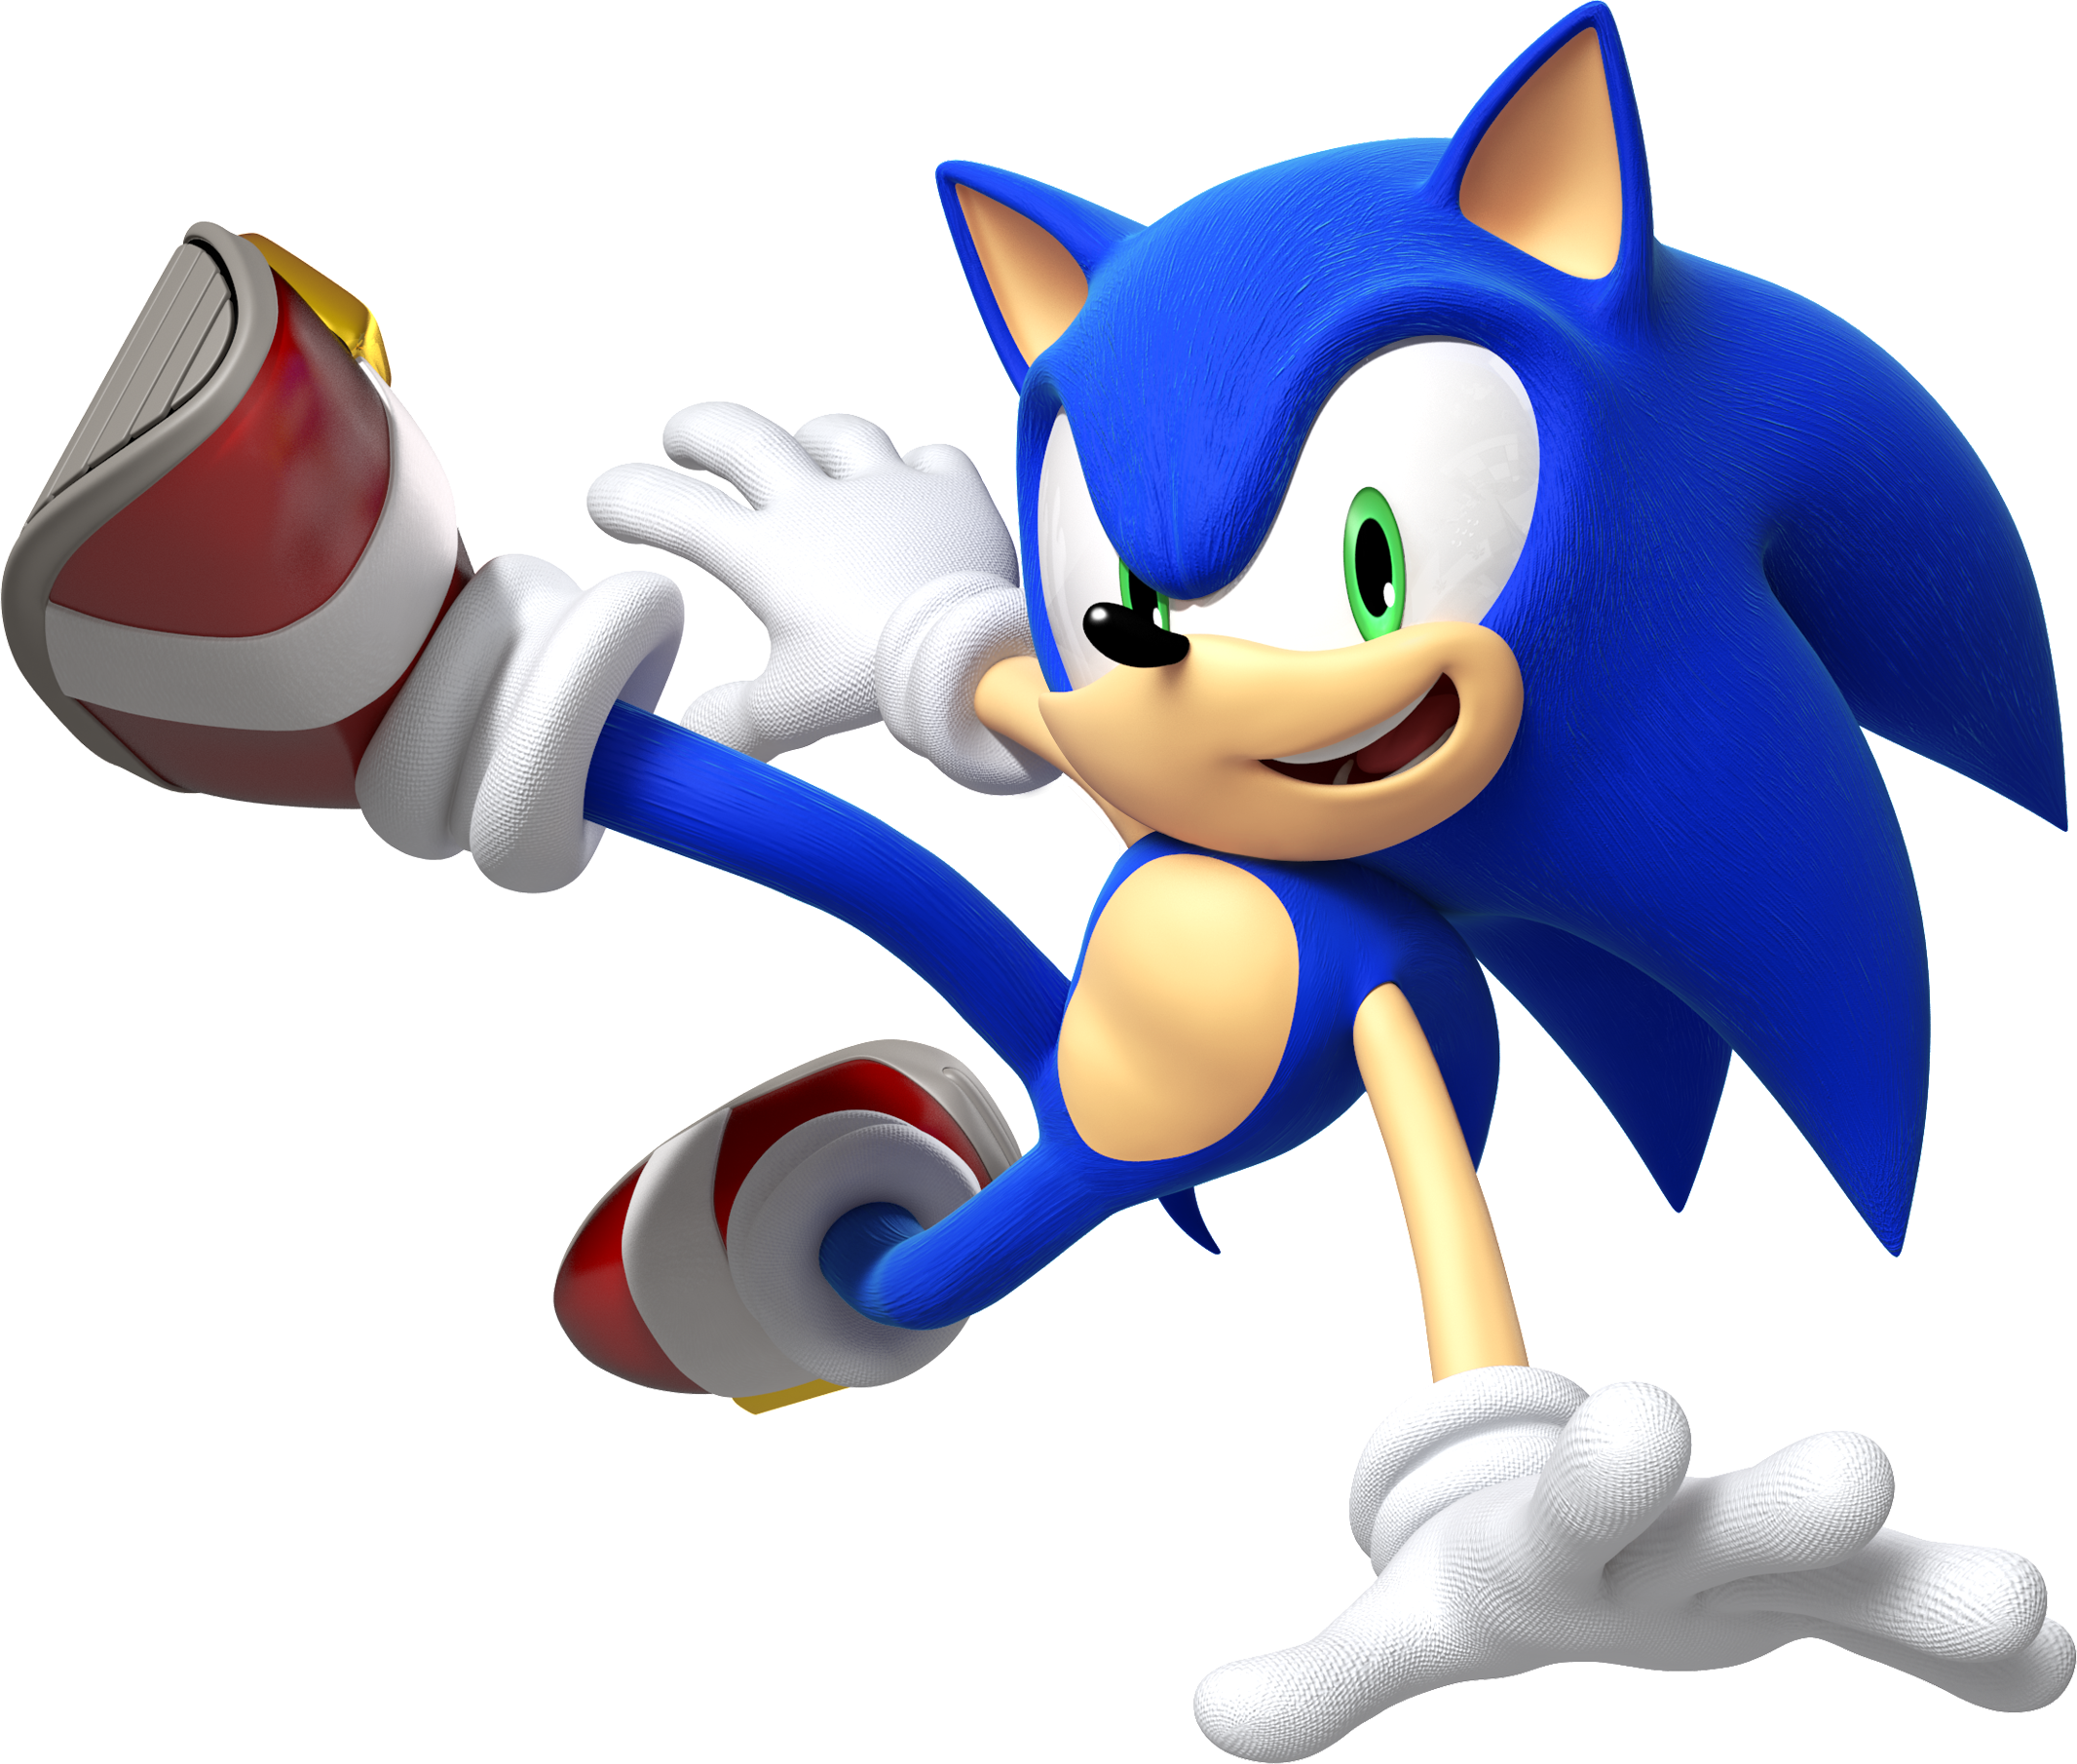 Sony Developing Sonic The Hedgehog Movie